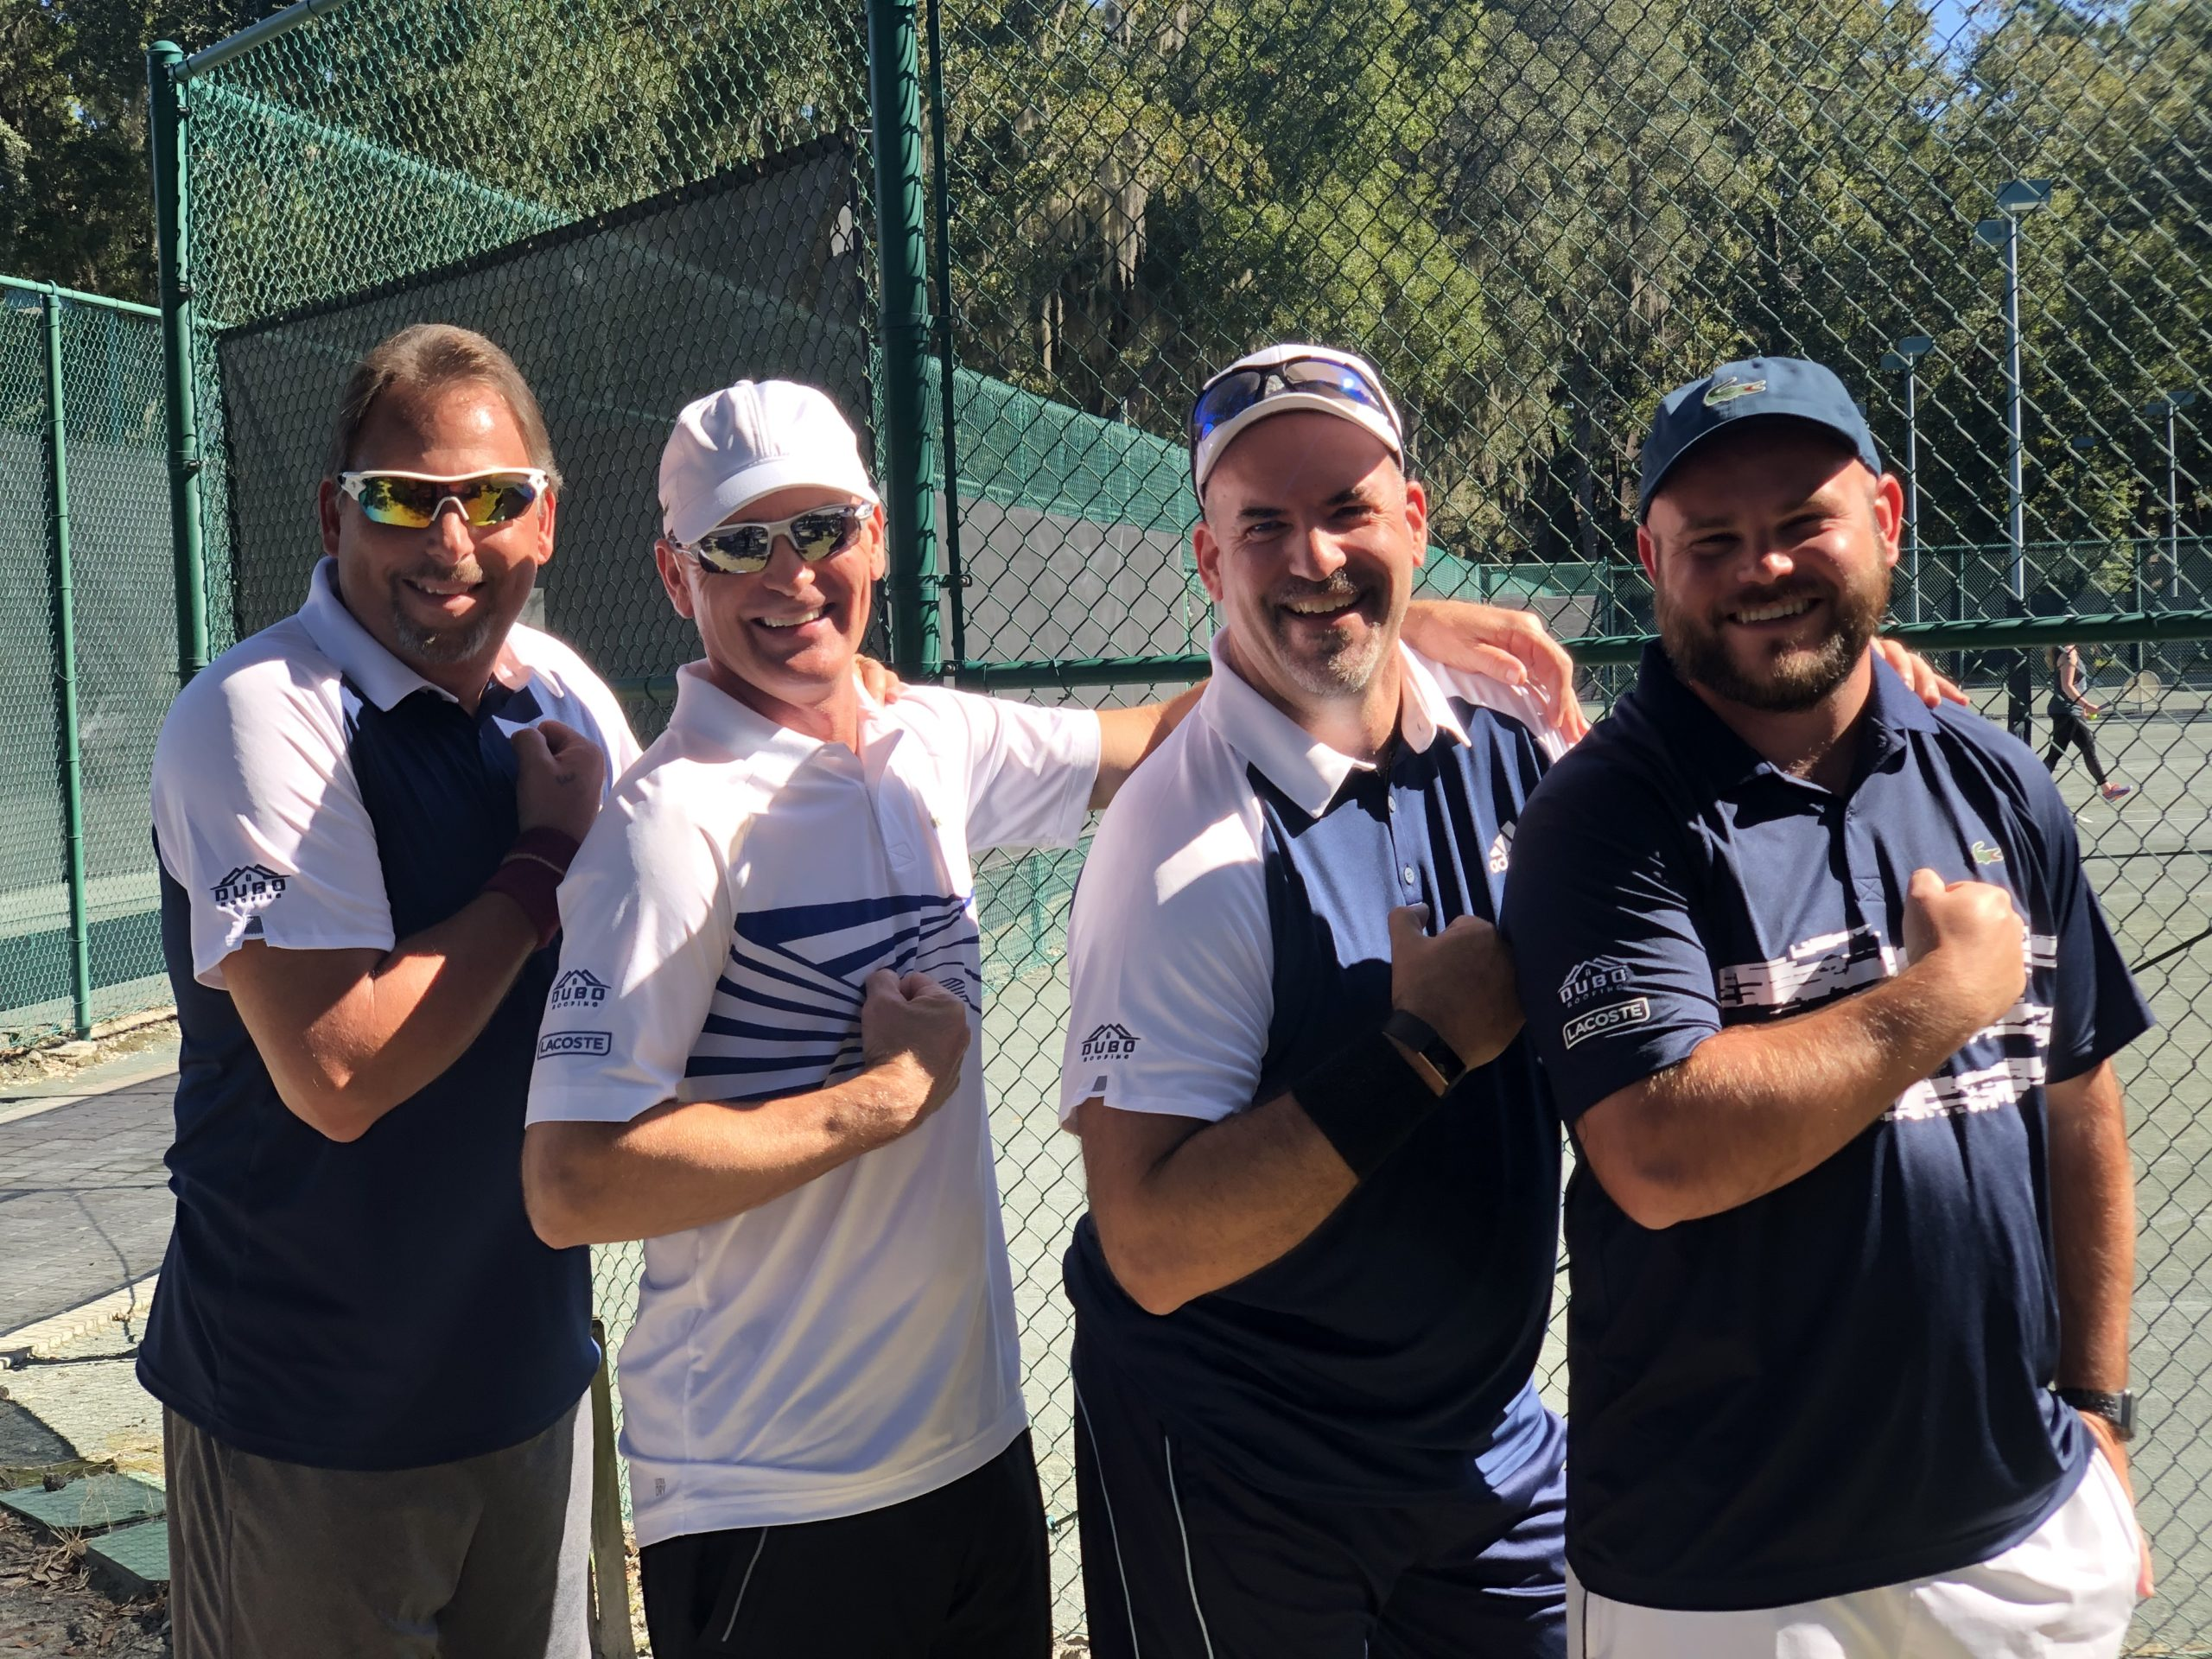 photo of 4 men on tennis court